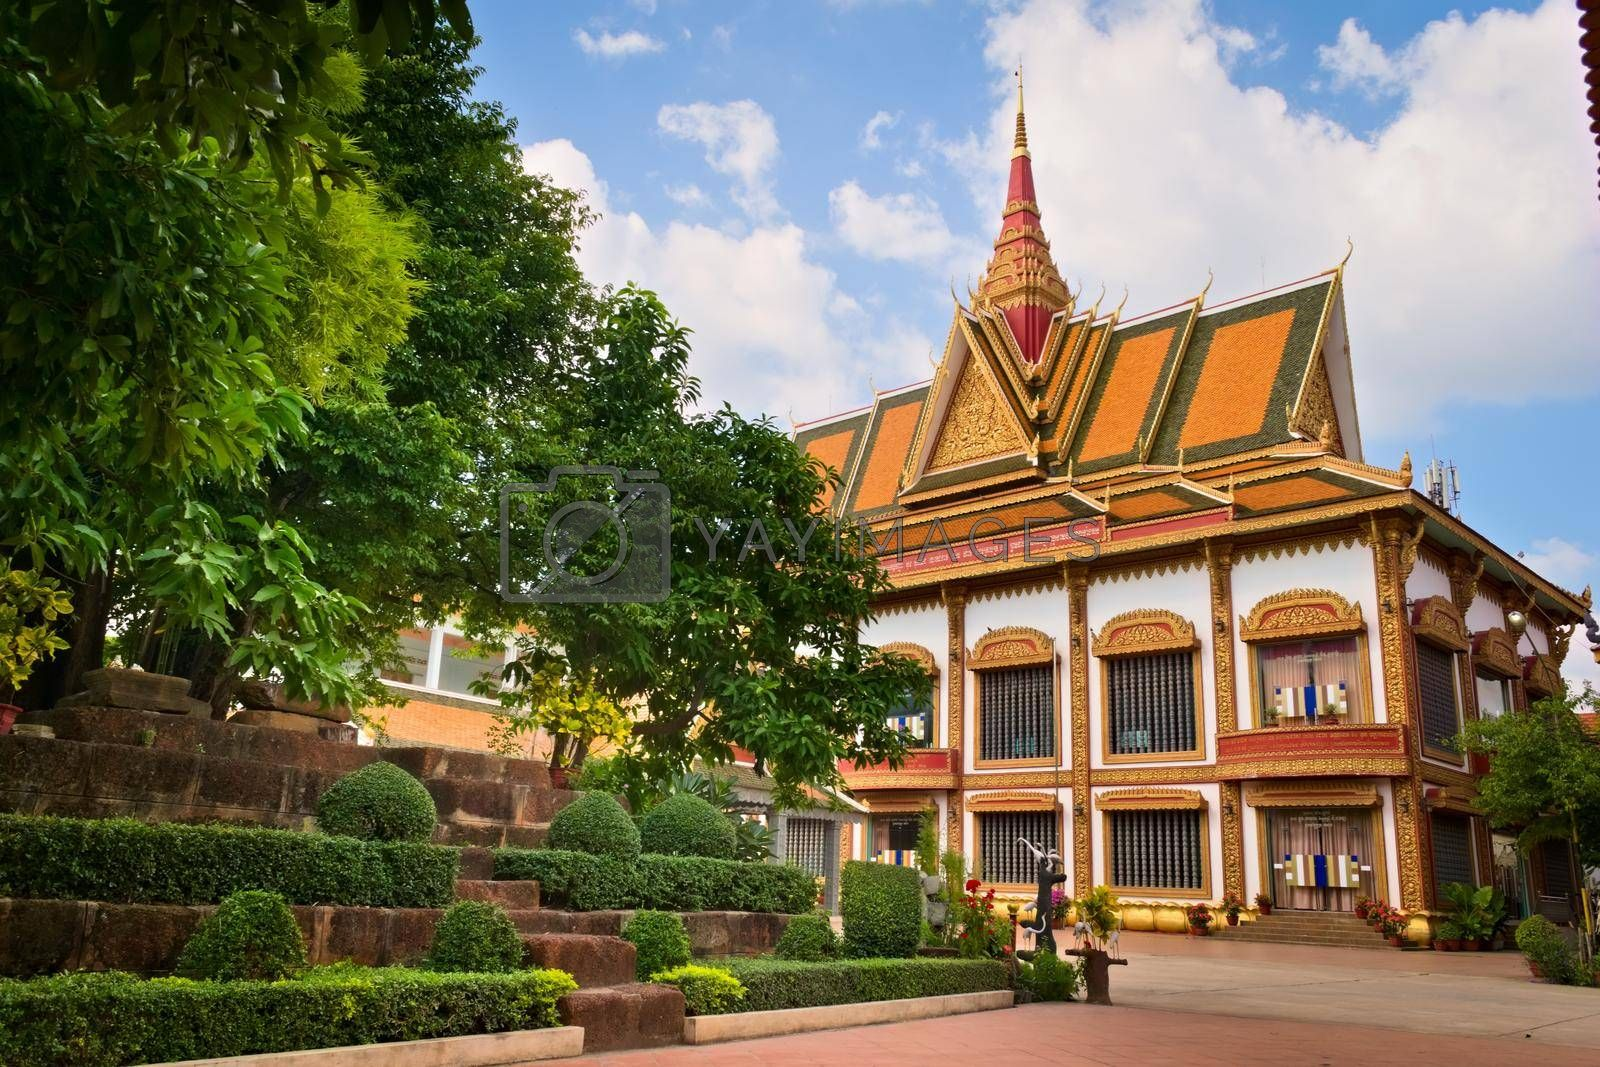 Royalty free image of 2019-11-16 / Siem Reap, Cambodia - Exterior view of a temple in Wat Preah Prom Rath, a buddhist complex built in the 13th century. by hernan_hyper